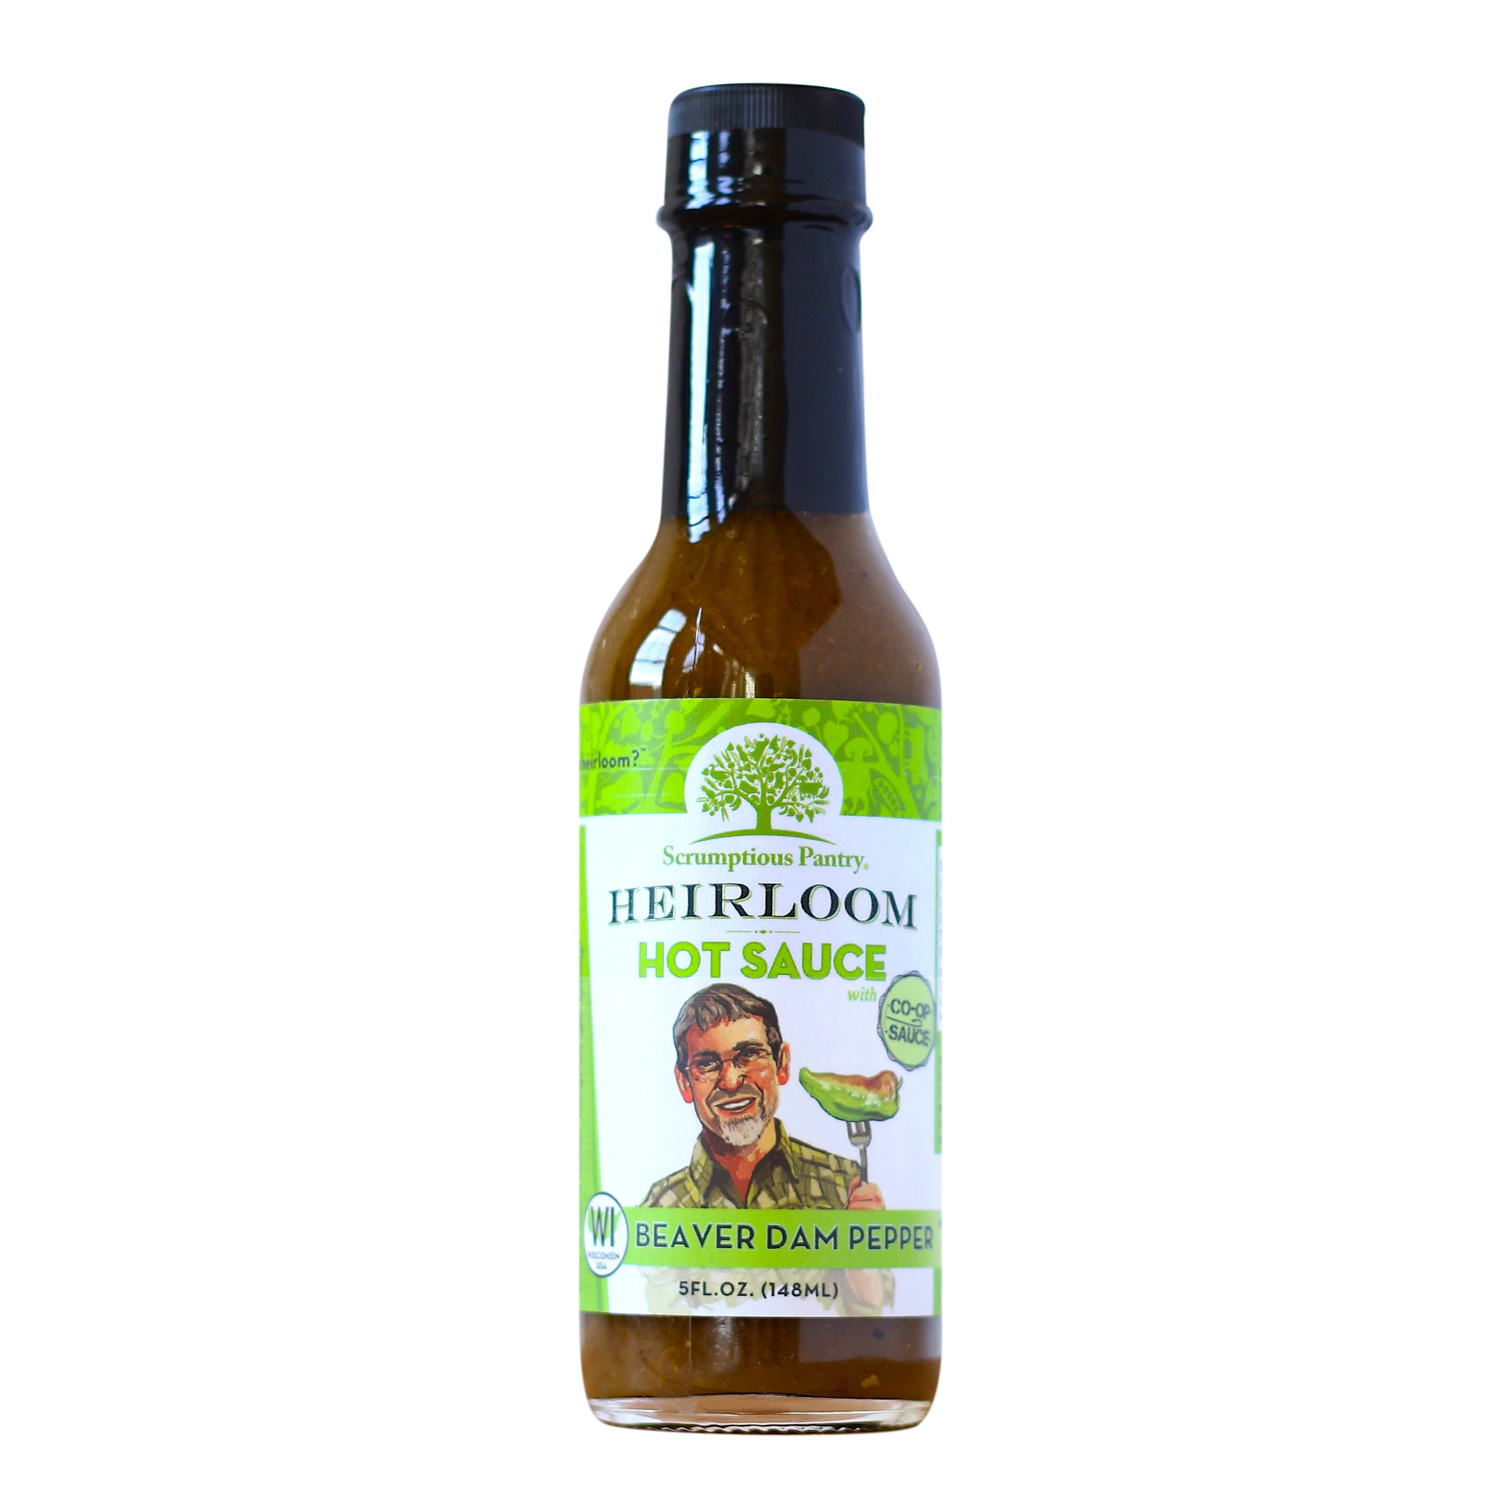 Scrumptious Pantry Heirloom Hot Sauce Beaver Dam Pepper